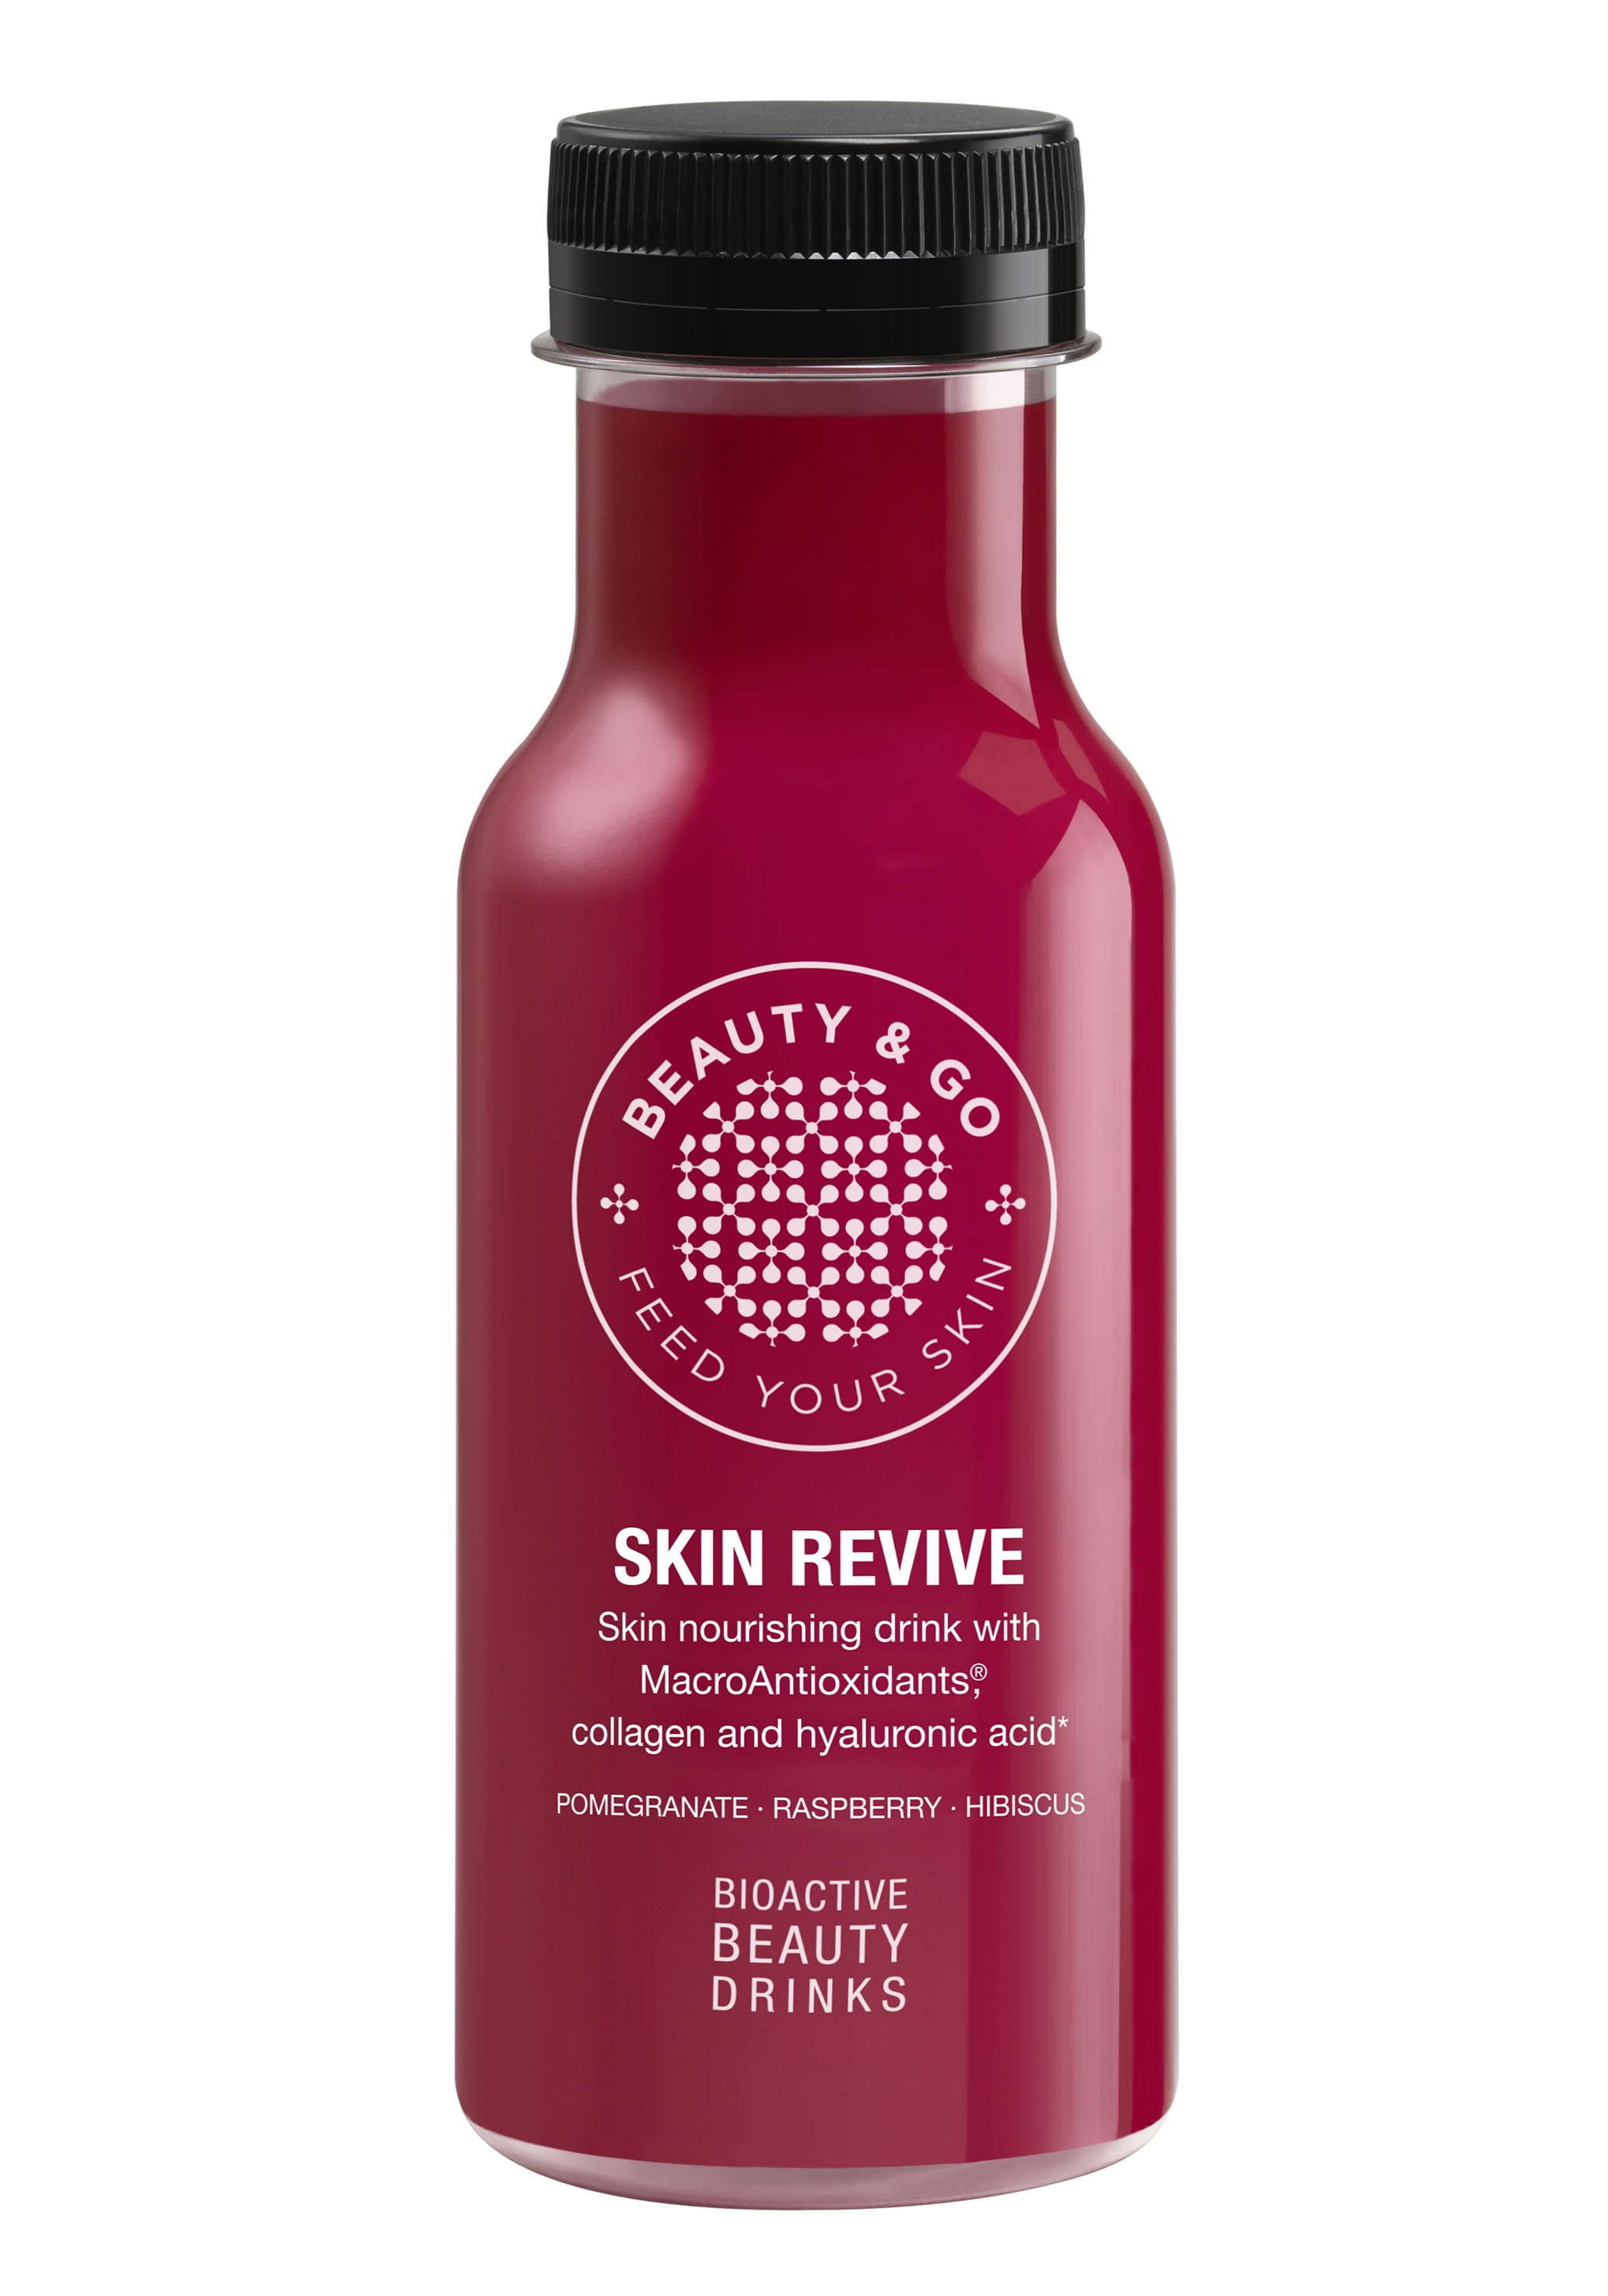 BEAUTY&GO Skin Revive